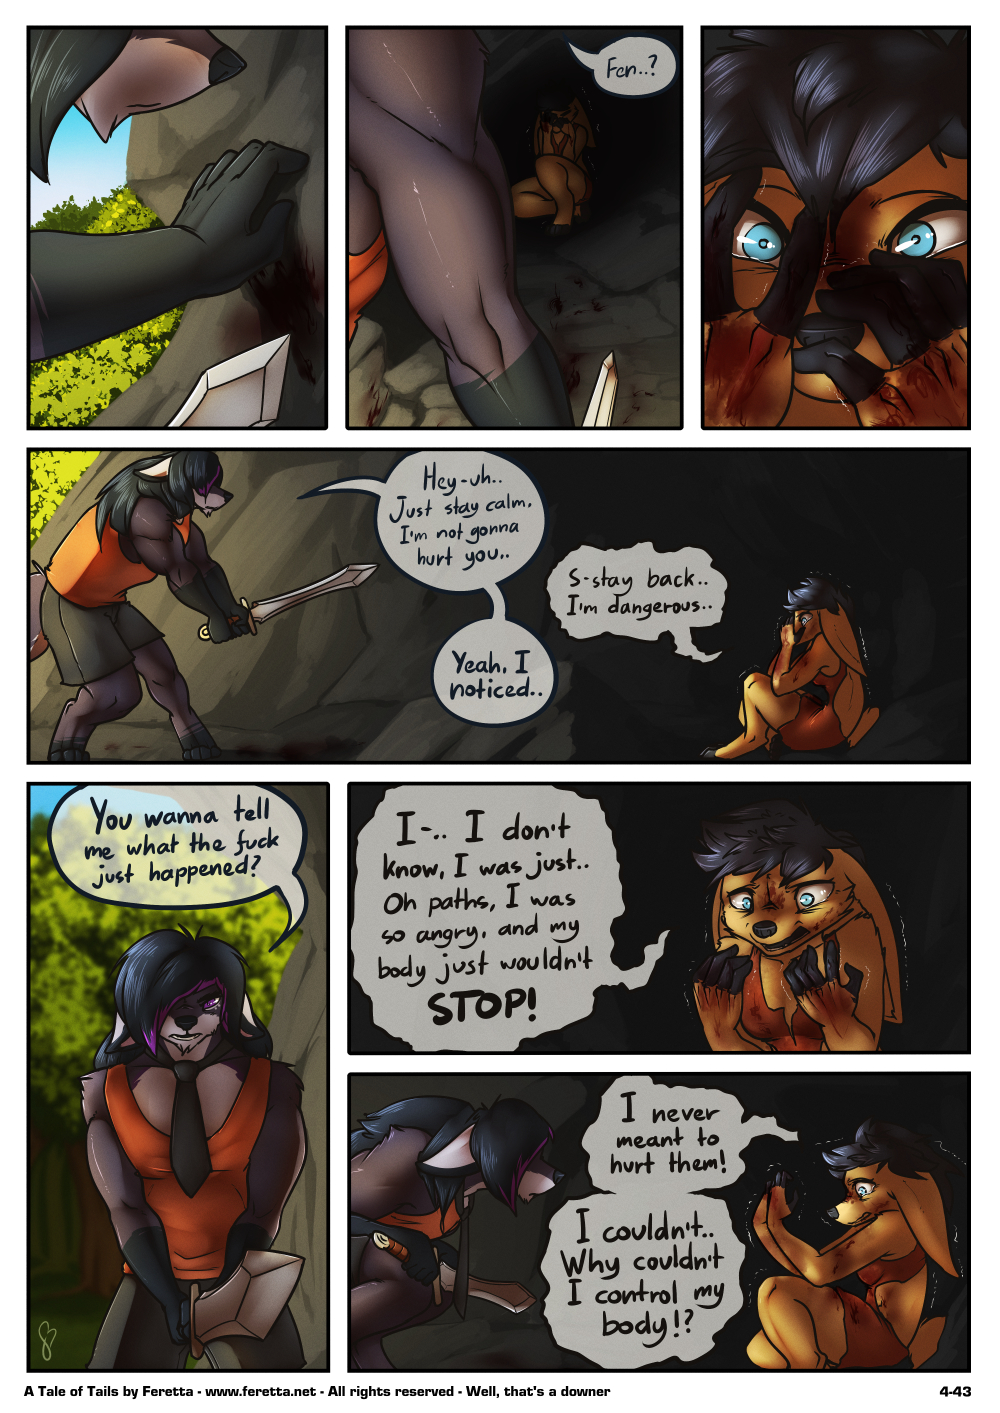 A Tale of Tails, 4-43